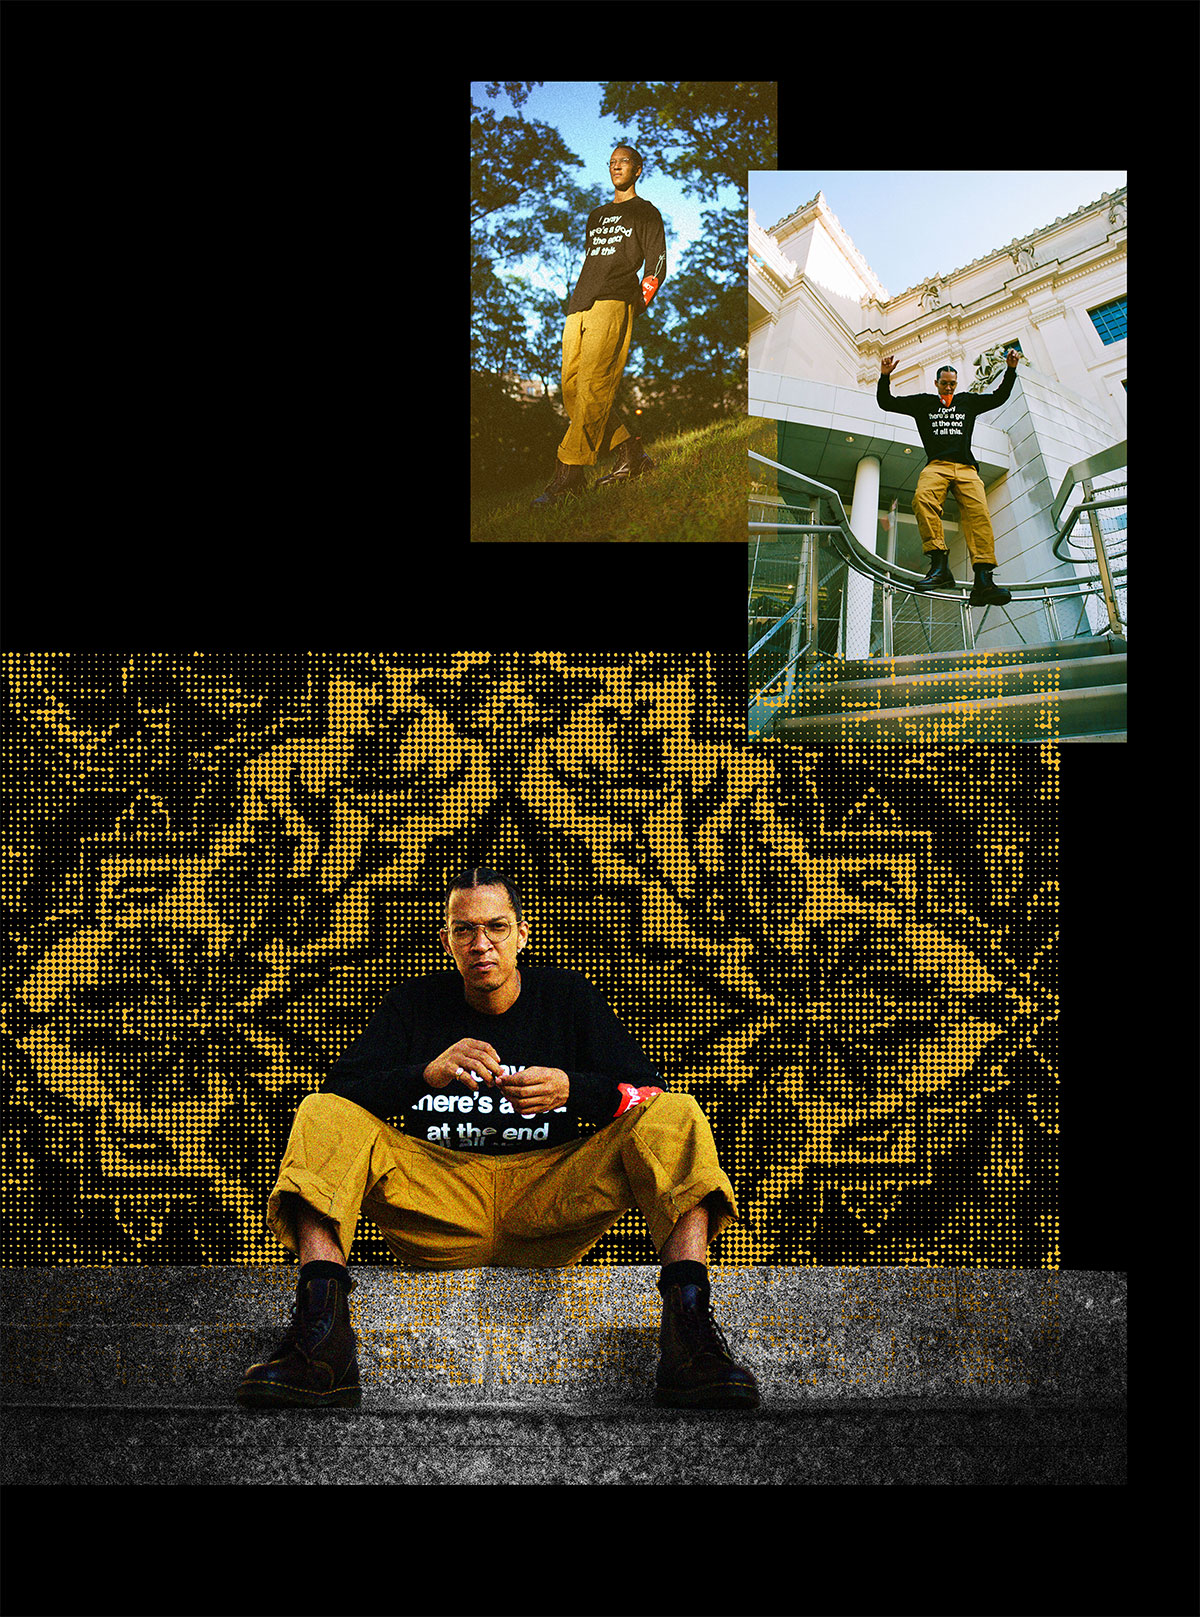 A collage of images showing him jumping down stairs, walking downhill in a park, and sitting on stairs in front of a textured background